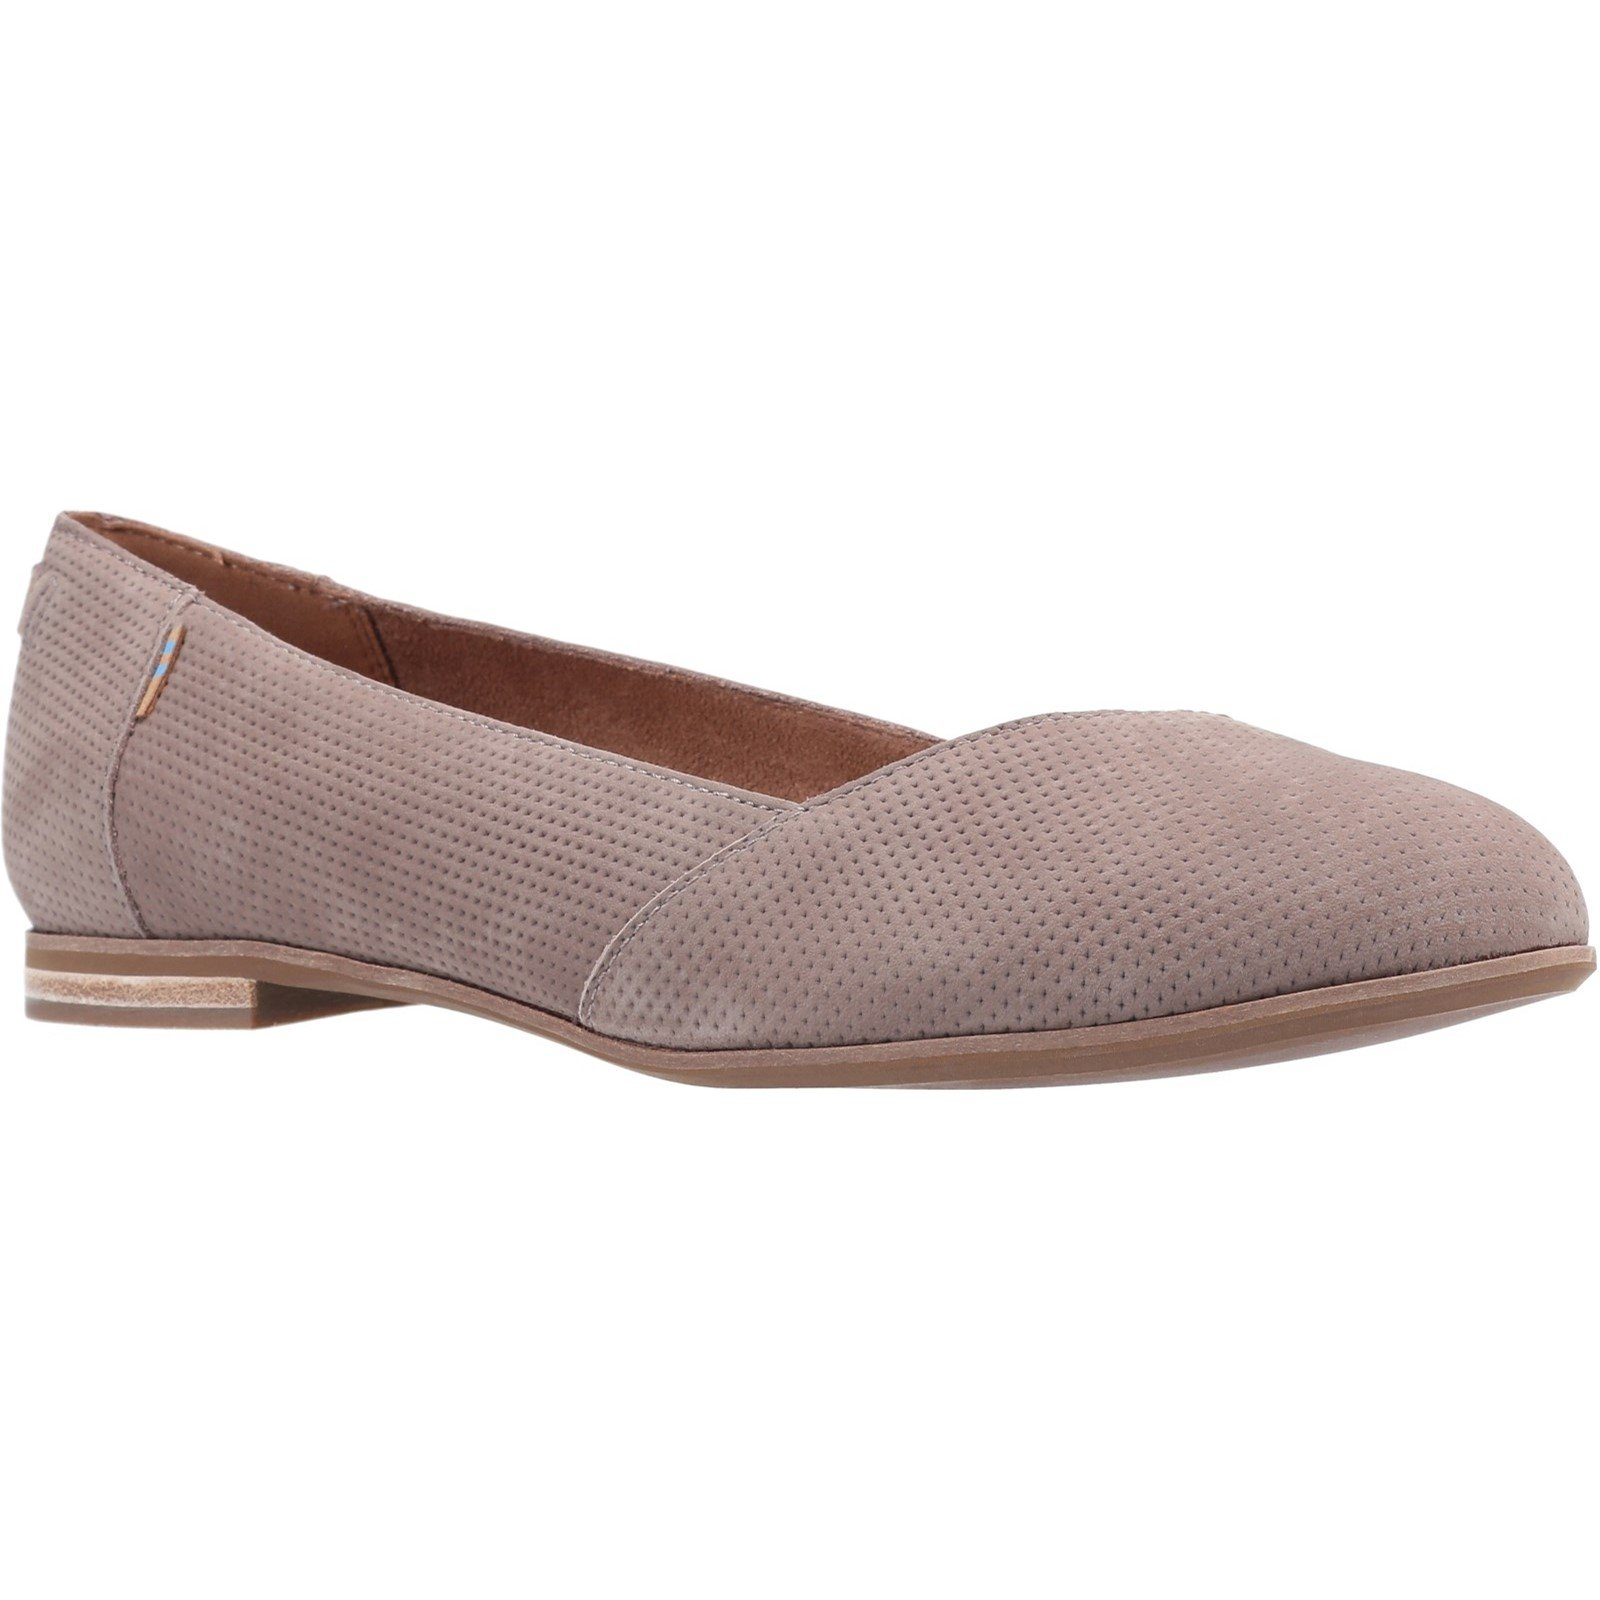 TOMS Women's Julie Flat Various Colours 31593 - Taupe Grey Suede/Perf 8